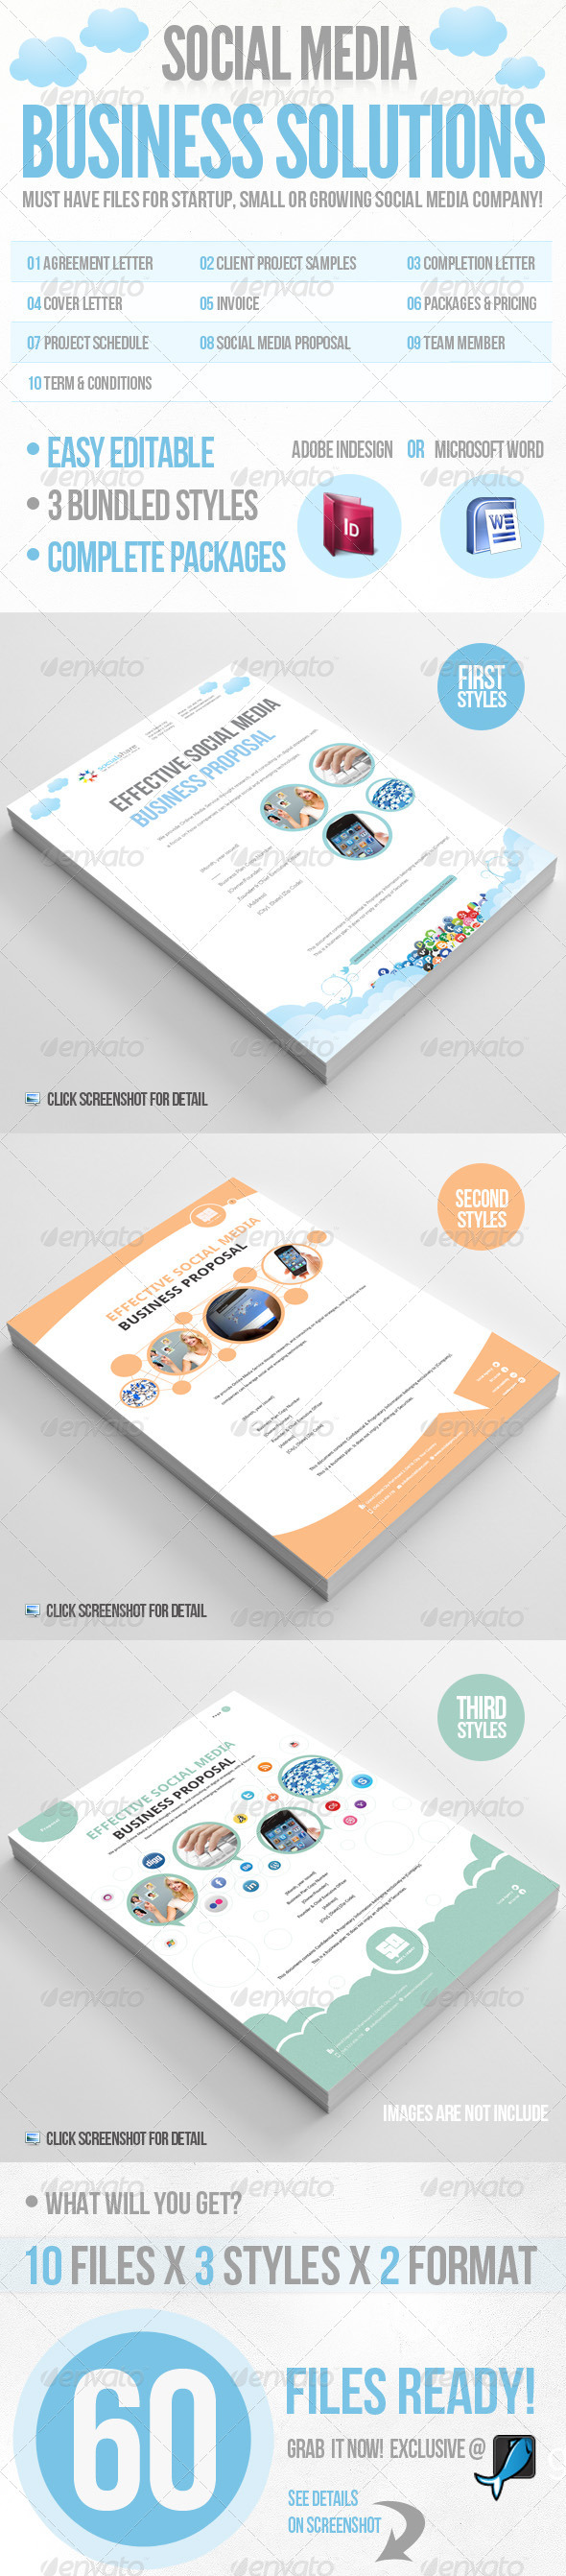 Social Media Business Solution - Proposals & Invoices Stationery